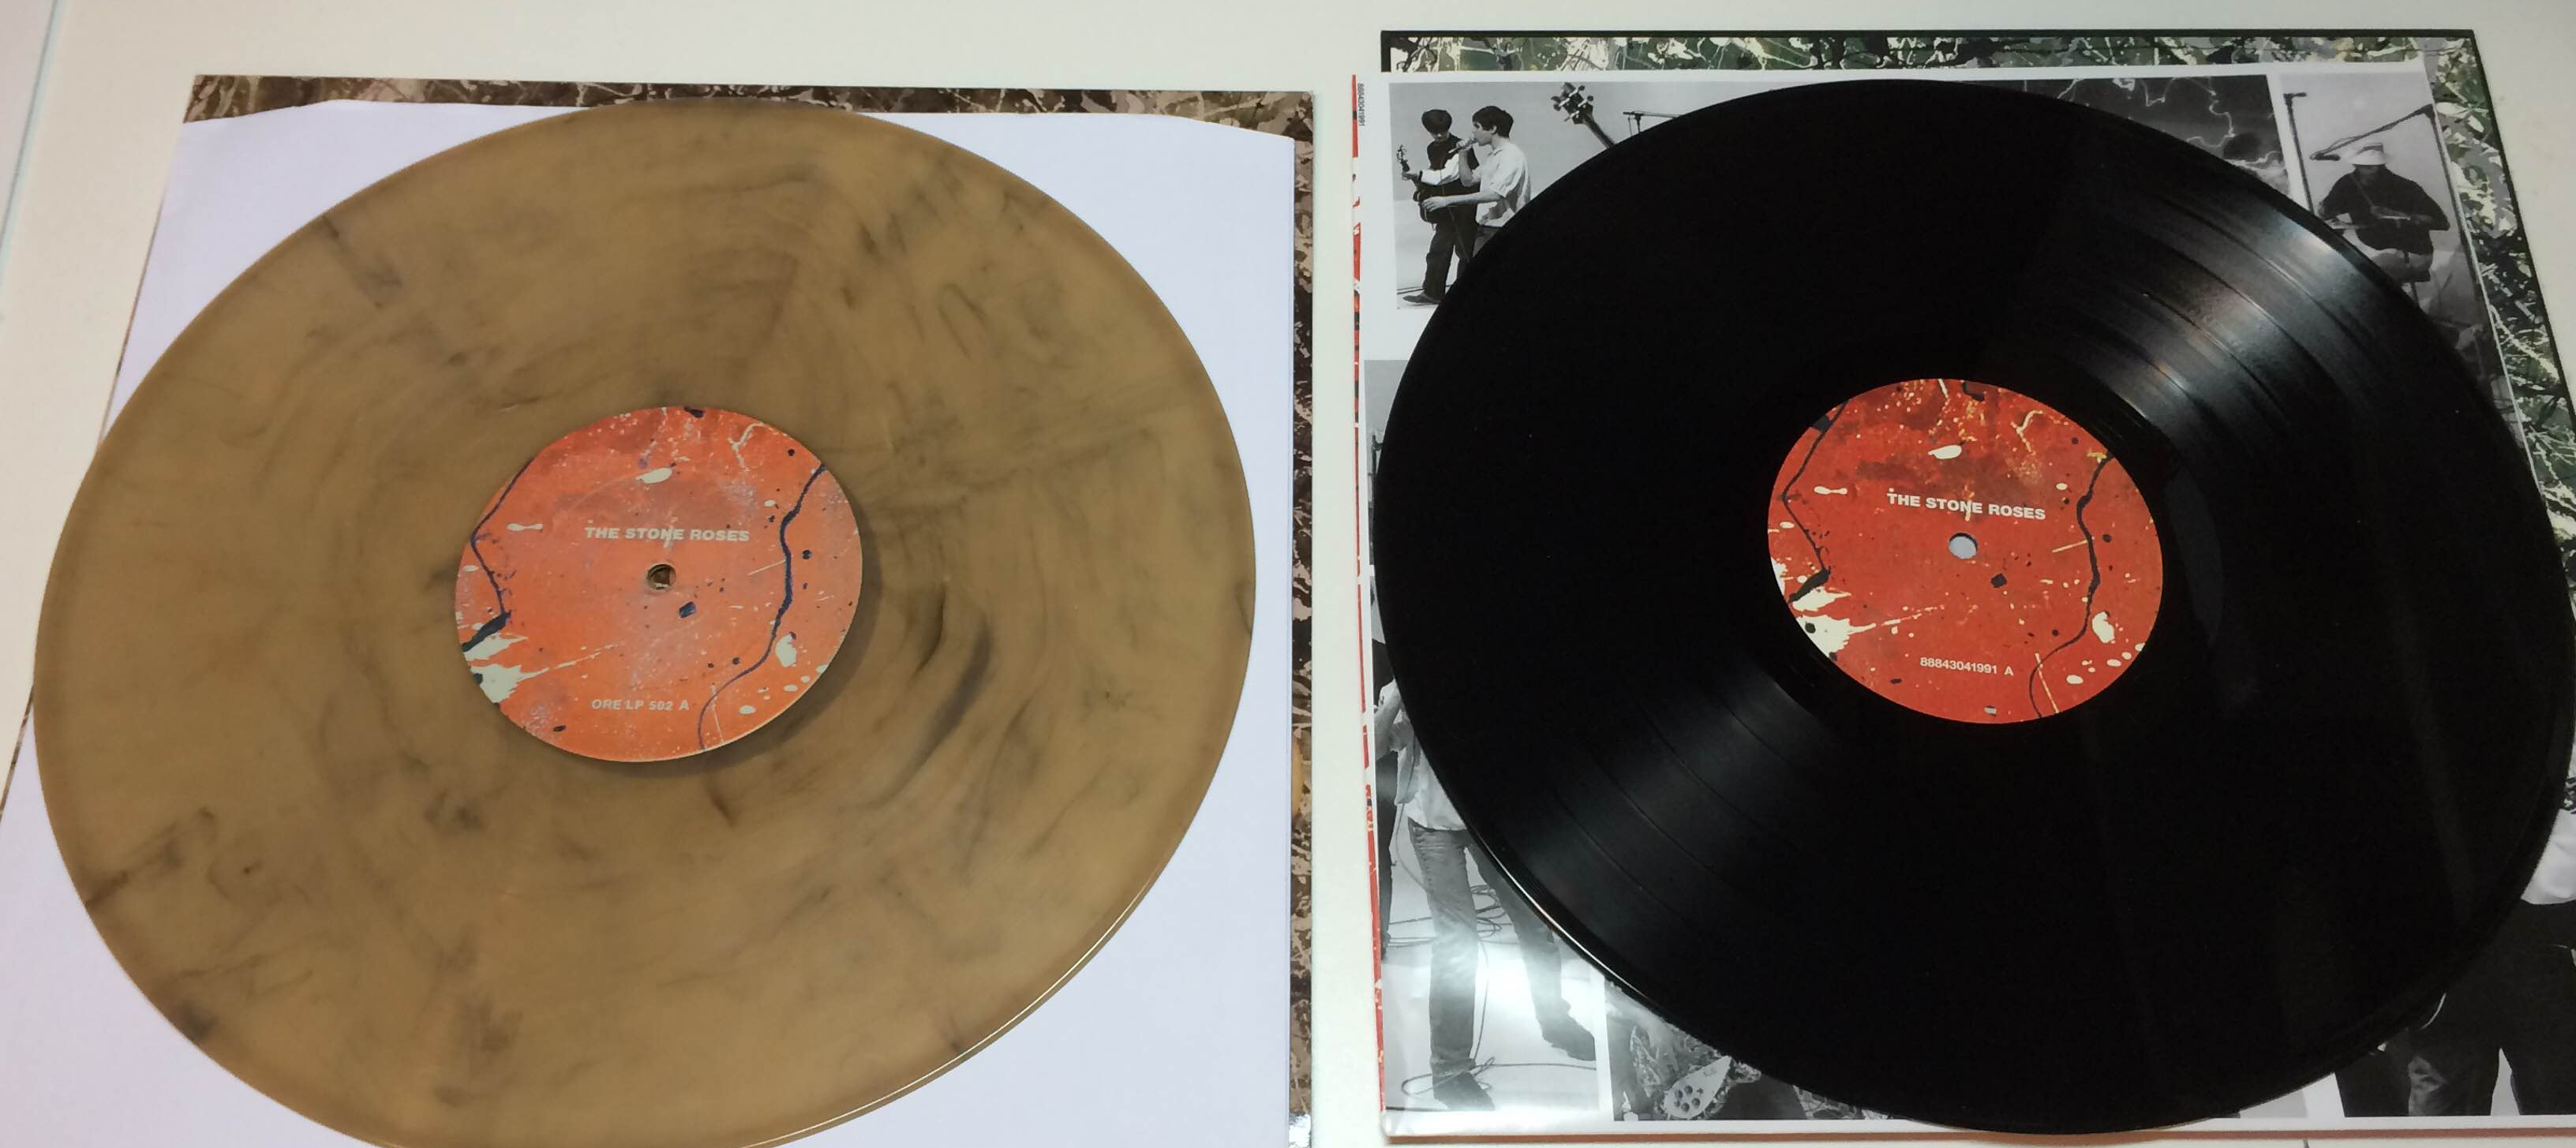 Collector S Corner Some Thoughts On Bootlegged Vinyl